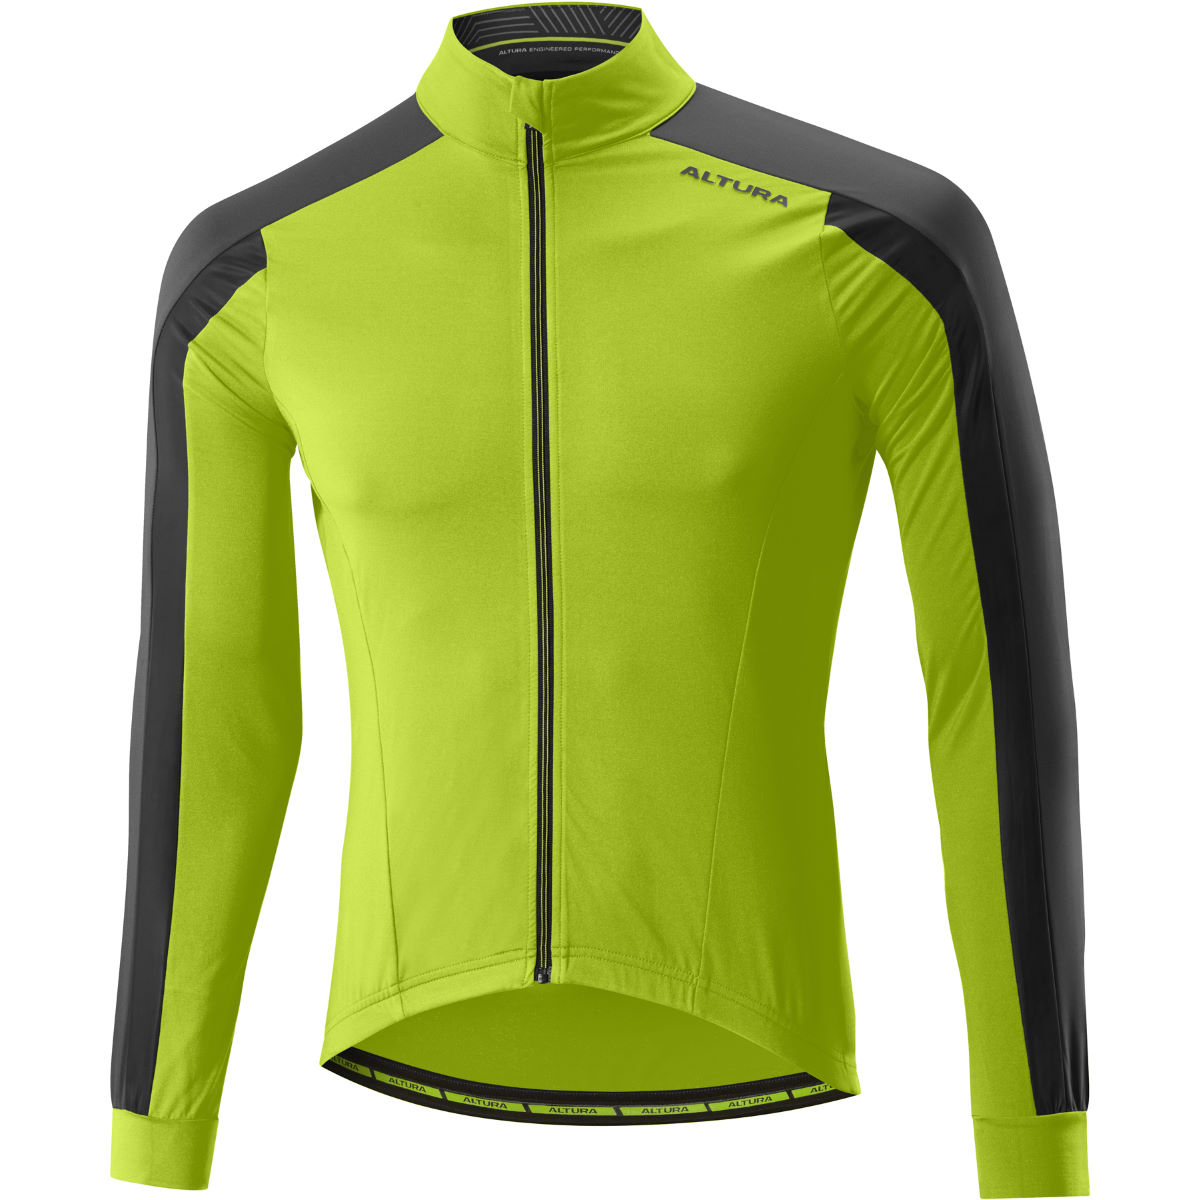 Maillot Altura NV2 Thermo (manches longues) - 2XL Jaune fluo